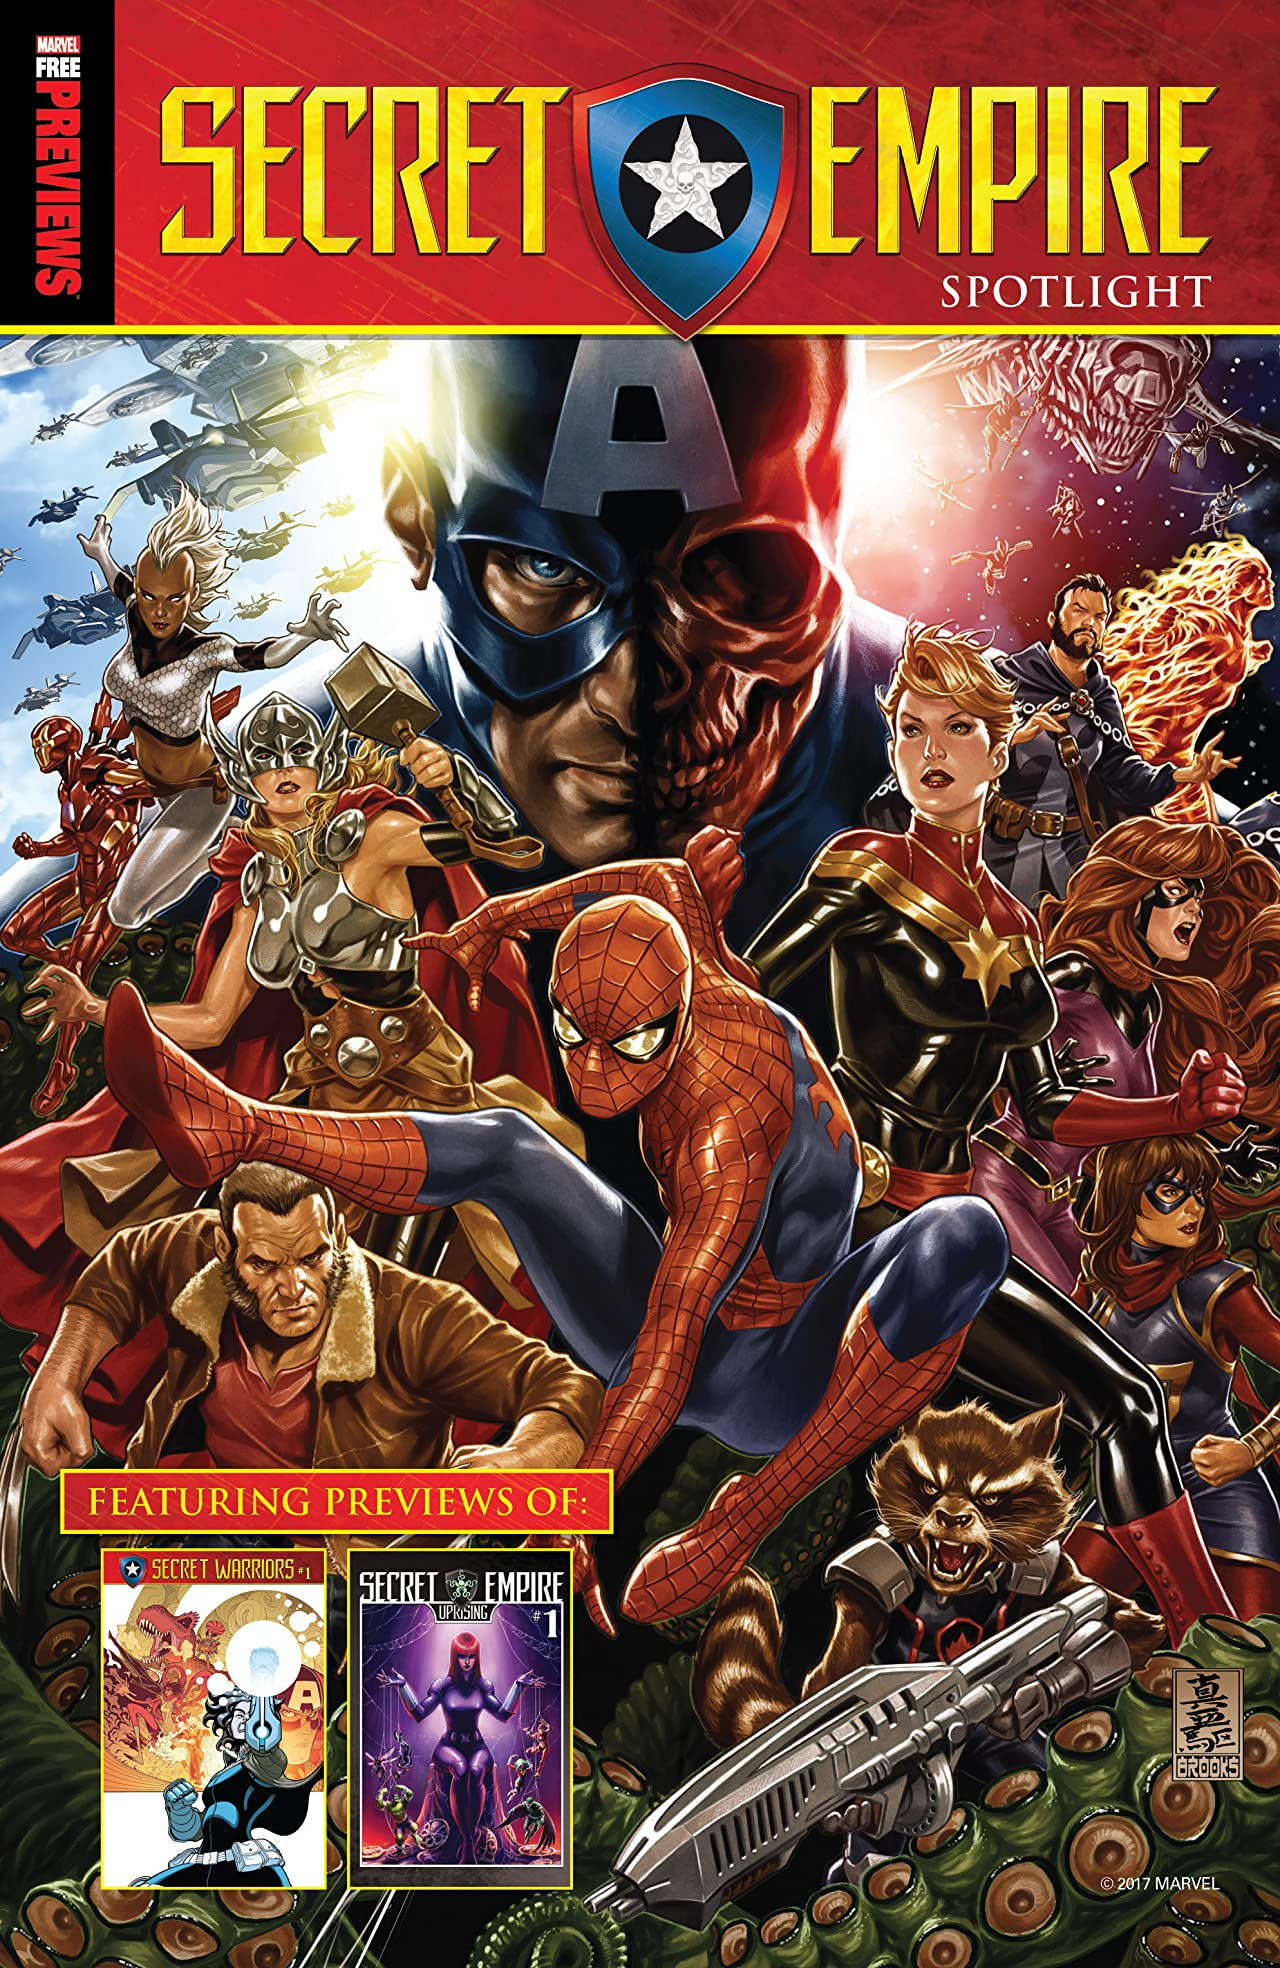 Secret Empire Free Previews Spotlight #1